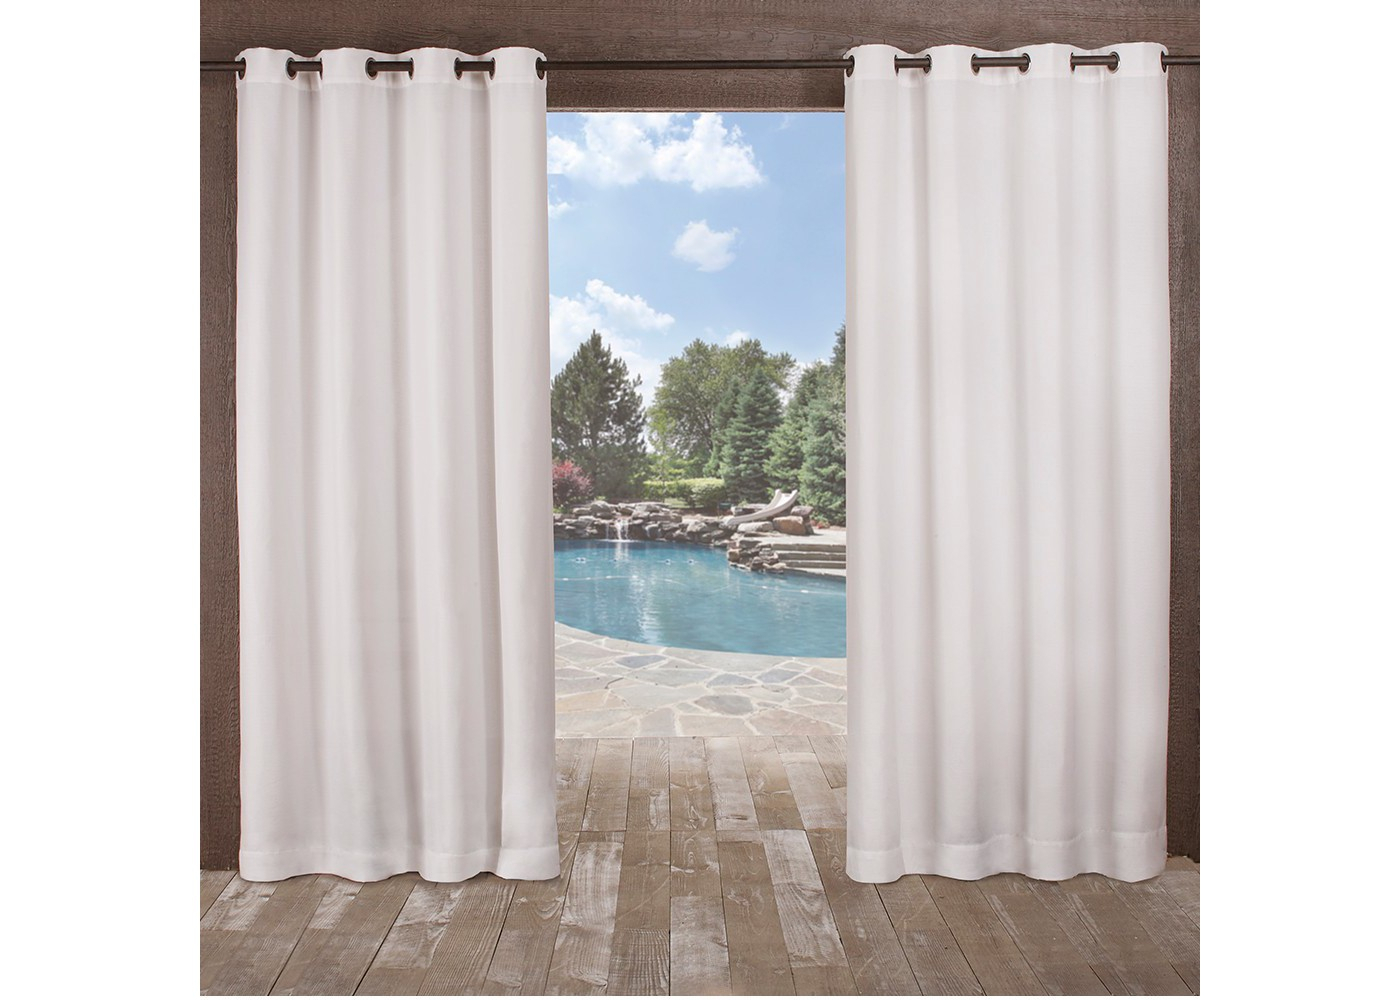 Exclusive Home Delano Indoor/outdoor Heavy Textured Grommet Top Window Curtain Panel Pair – White 54x96 Within Indoor/outdoor Solid Cabana Grommet Top Curtain Panel Pairs (View 12 of 20)